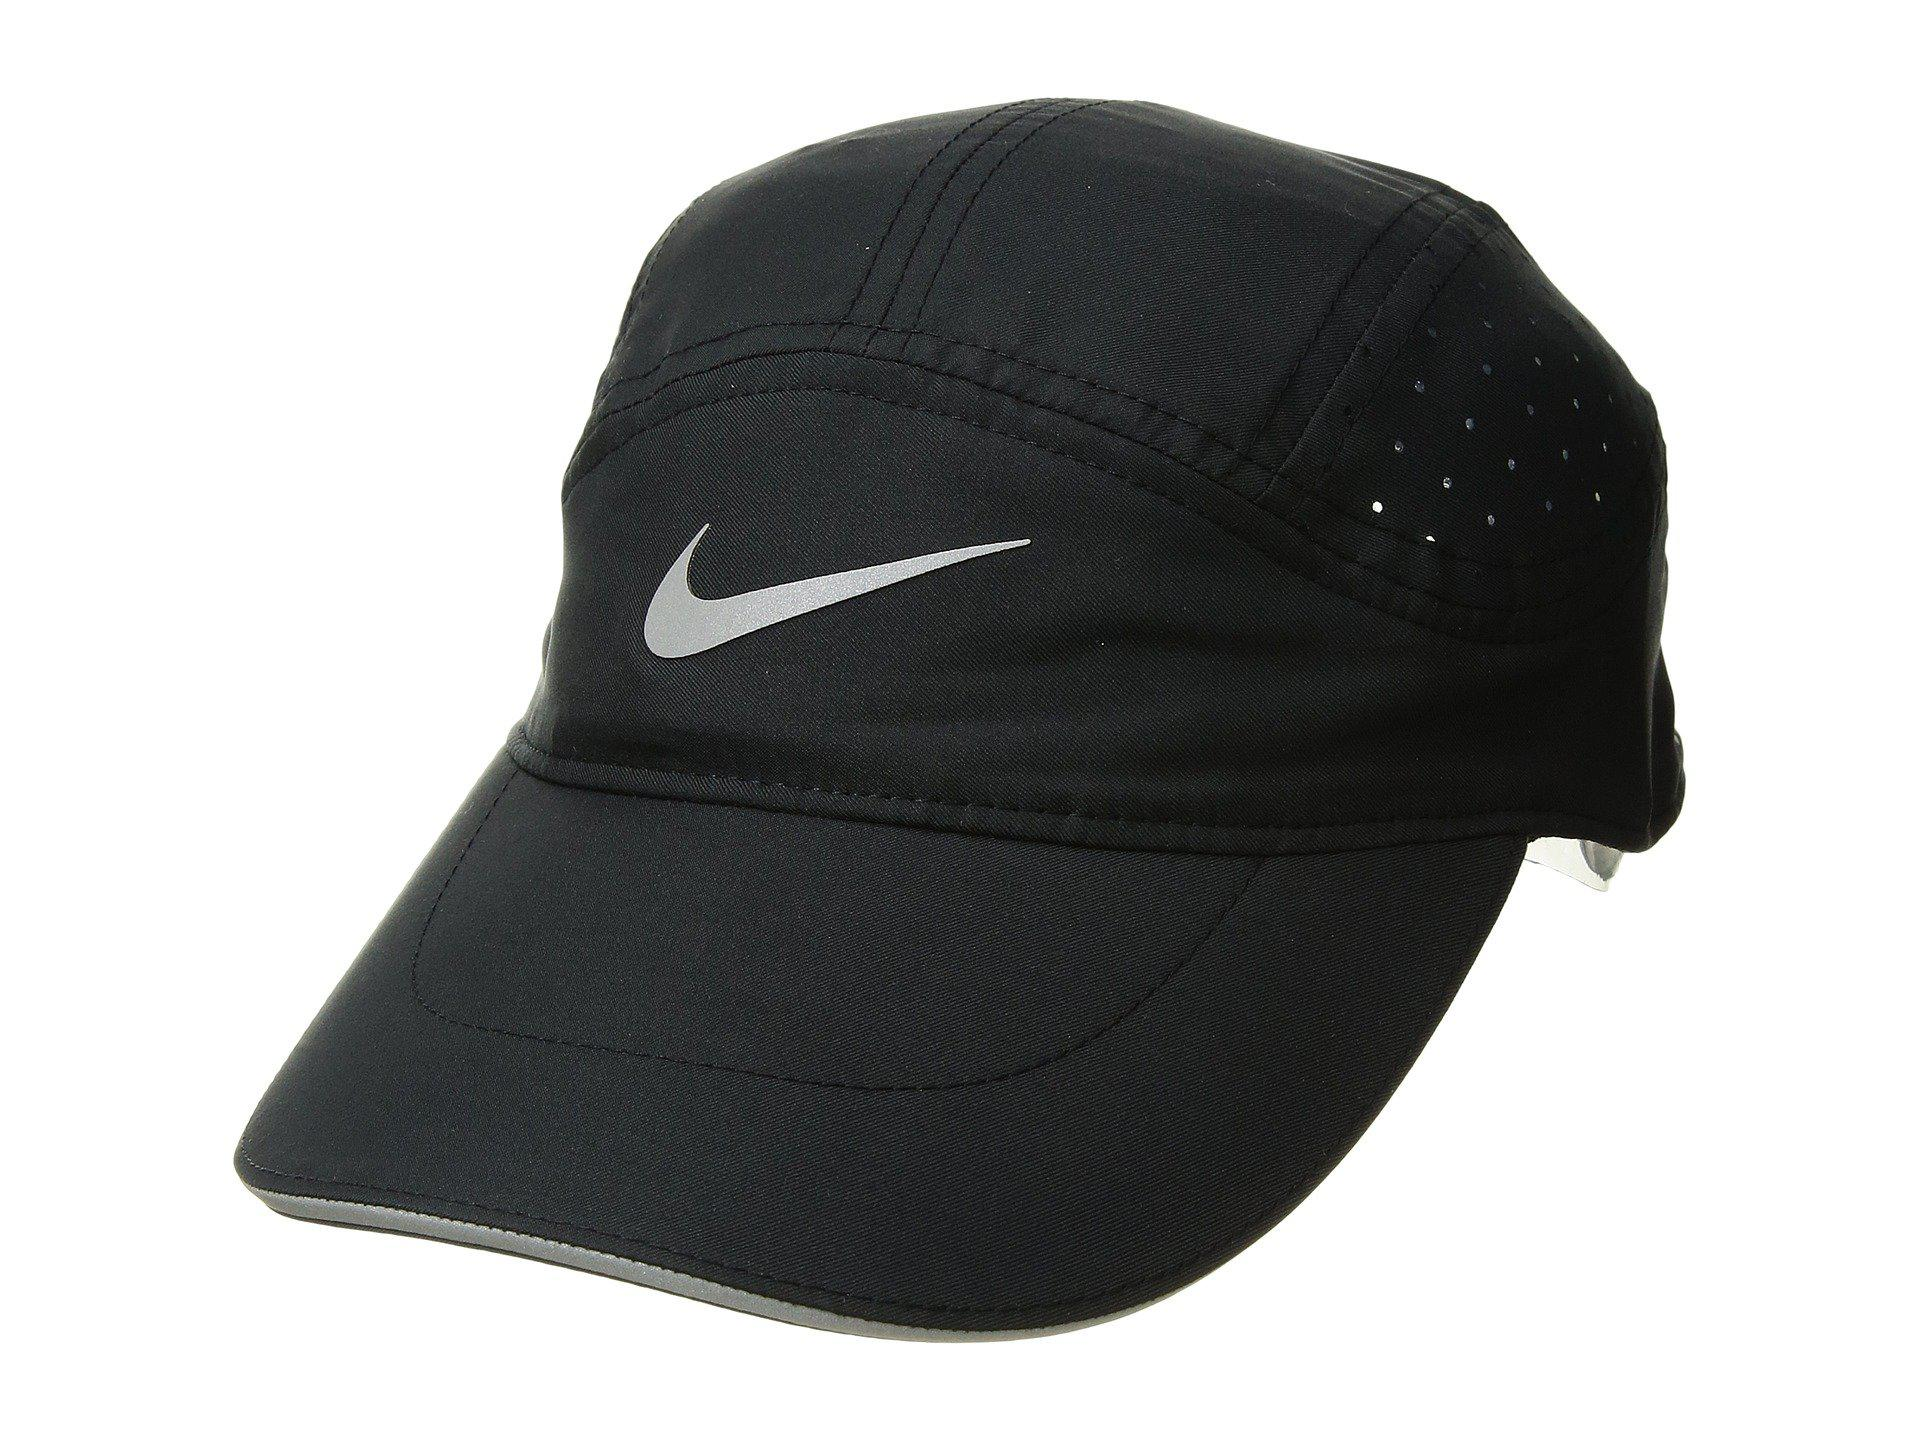 3c74a452 Nike Aerobill Running Cap (black/black) Caps in Black for Men - Lyst